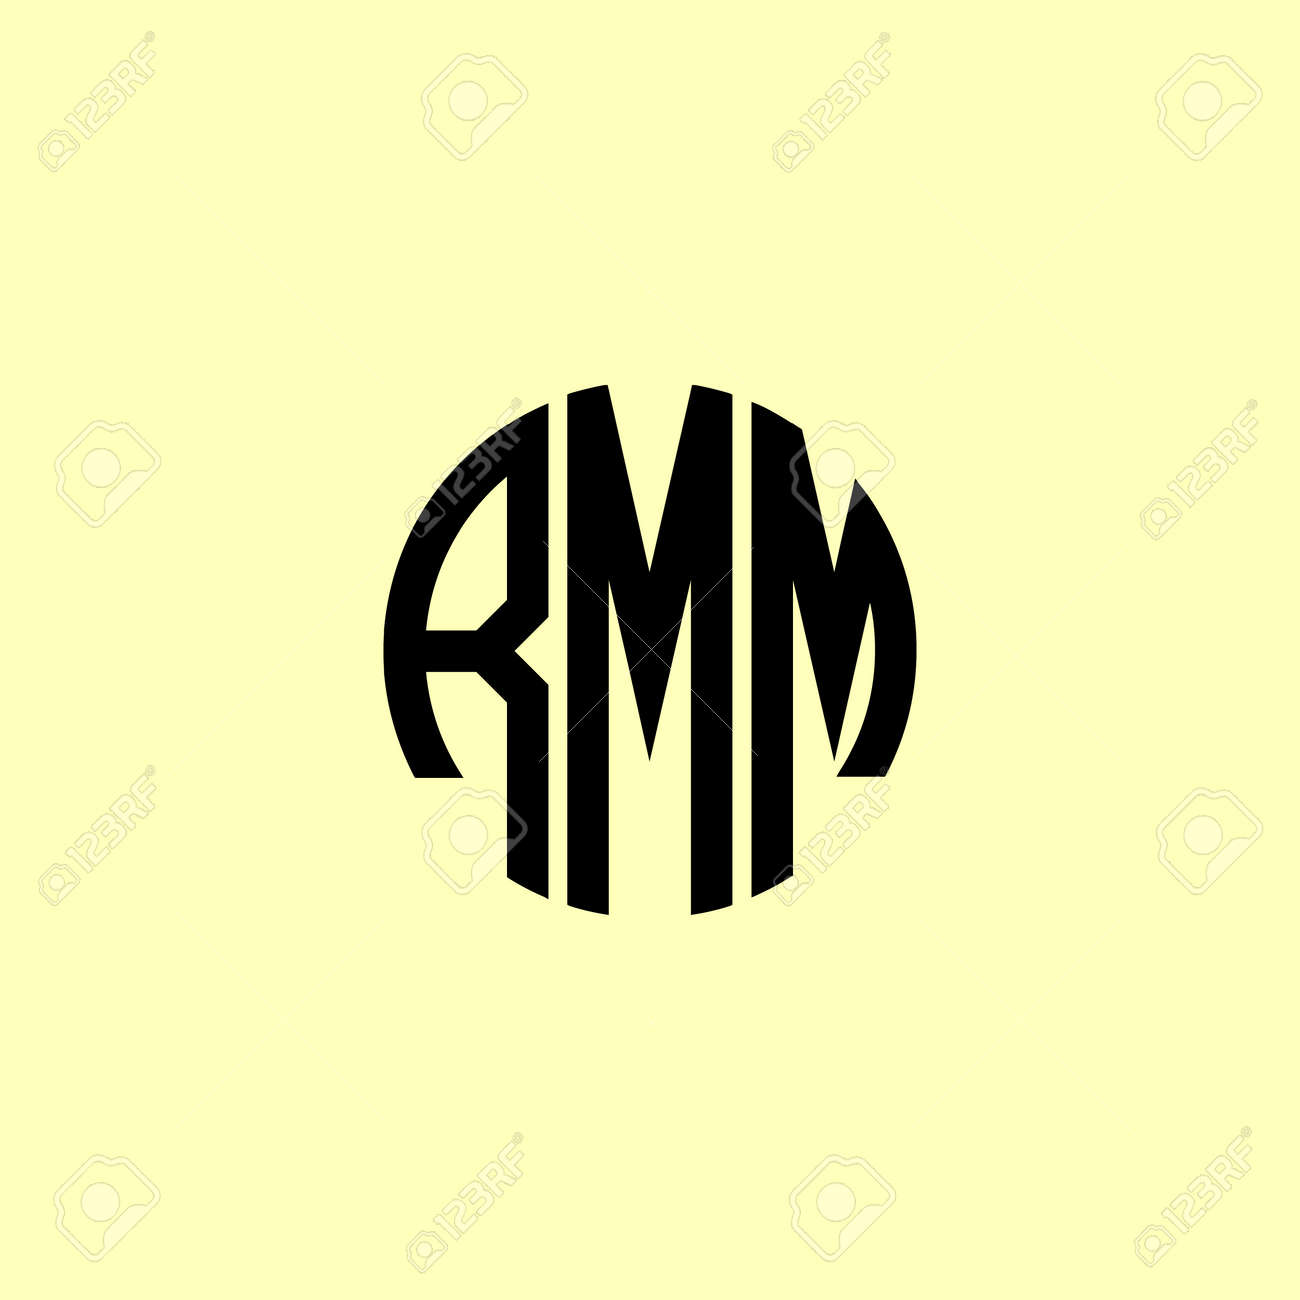 Creative Rounded Initial Letters RMM Logo. It will be suitable for which company or brand name start those initial. - 171682913